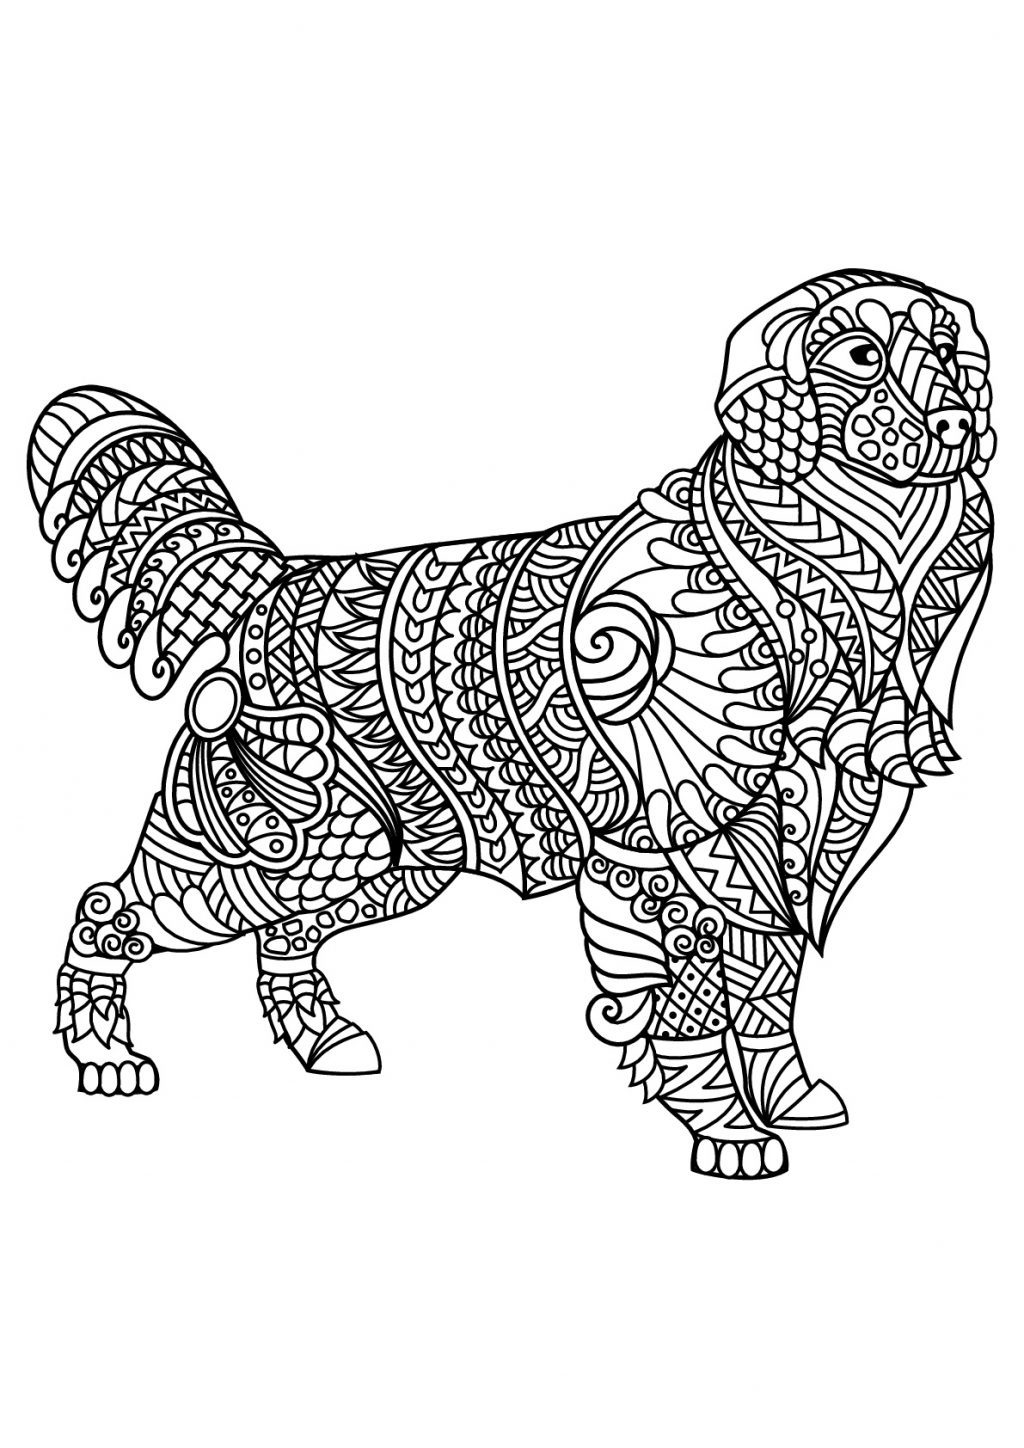 advanced animal coloring pages animal coloring page 69 coloring pages animal coloring pages coloring advanced animal